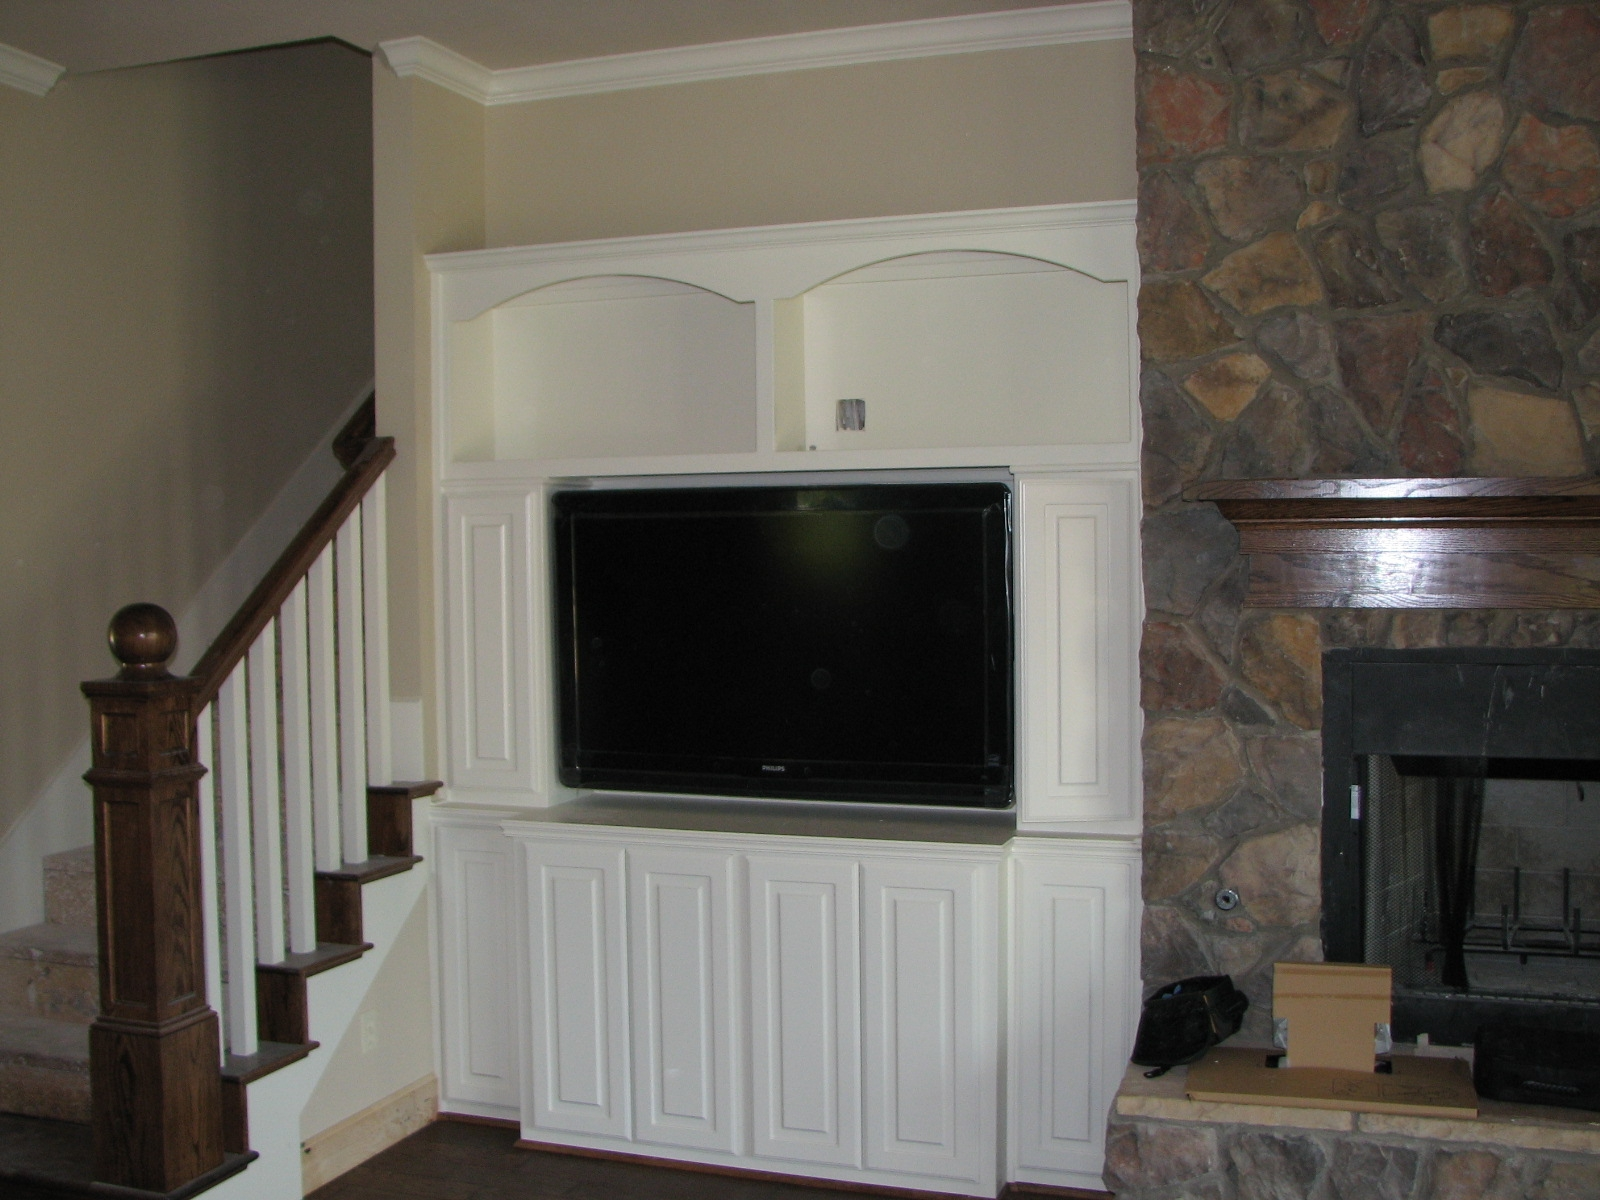 13 Surprisingly T V Cabinet Built In The Wall Tierra Este